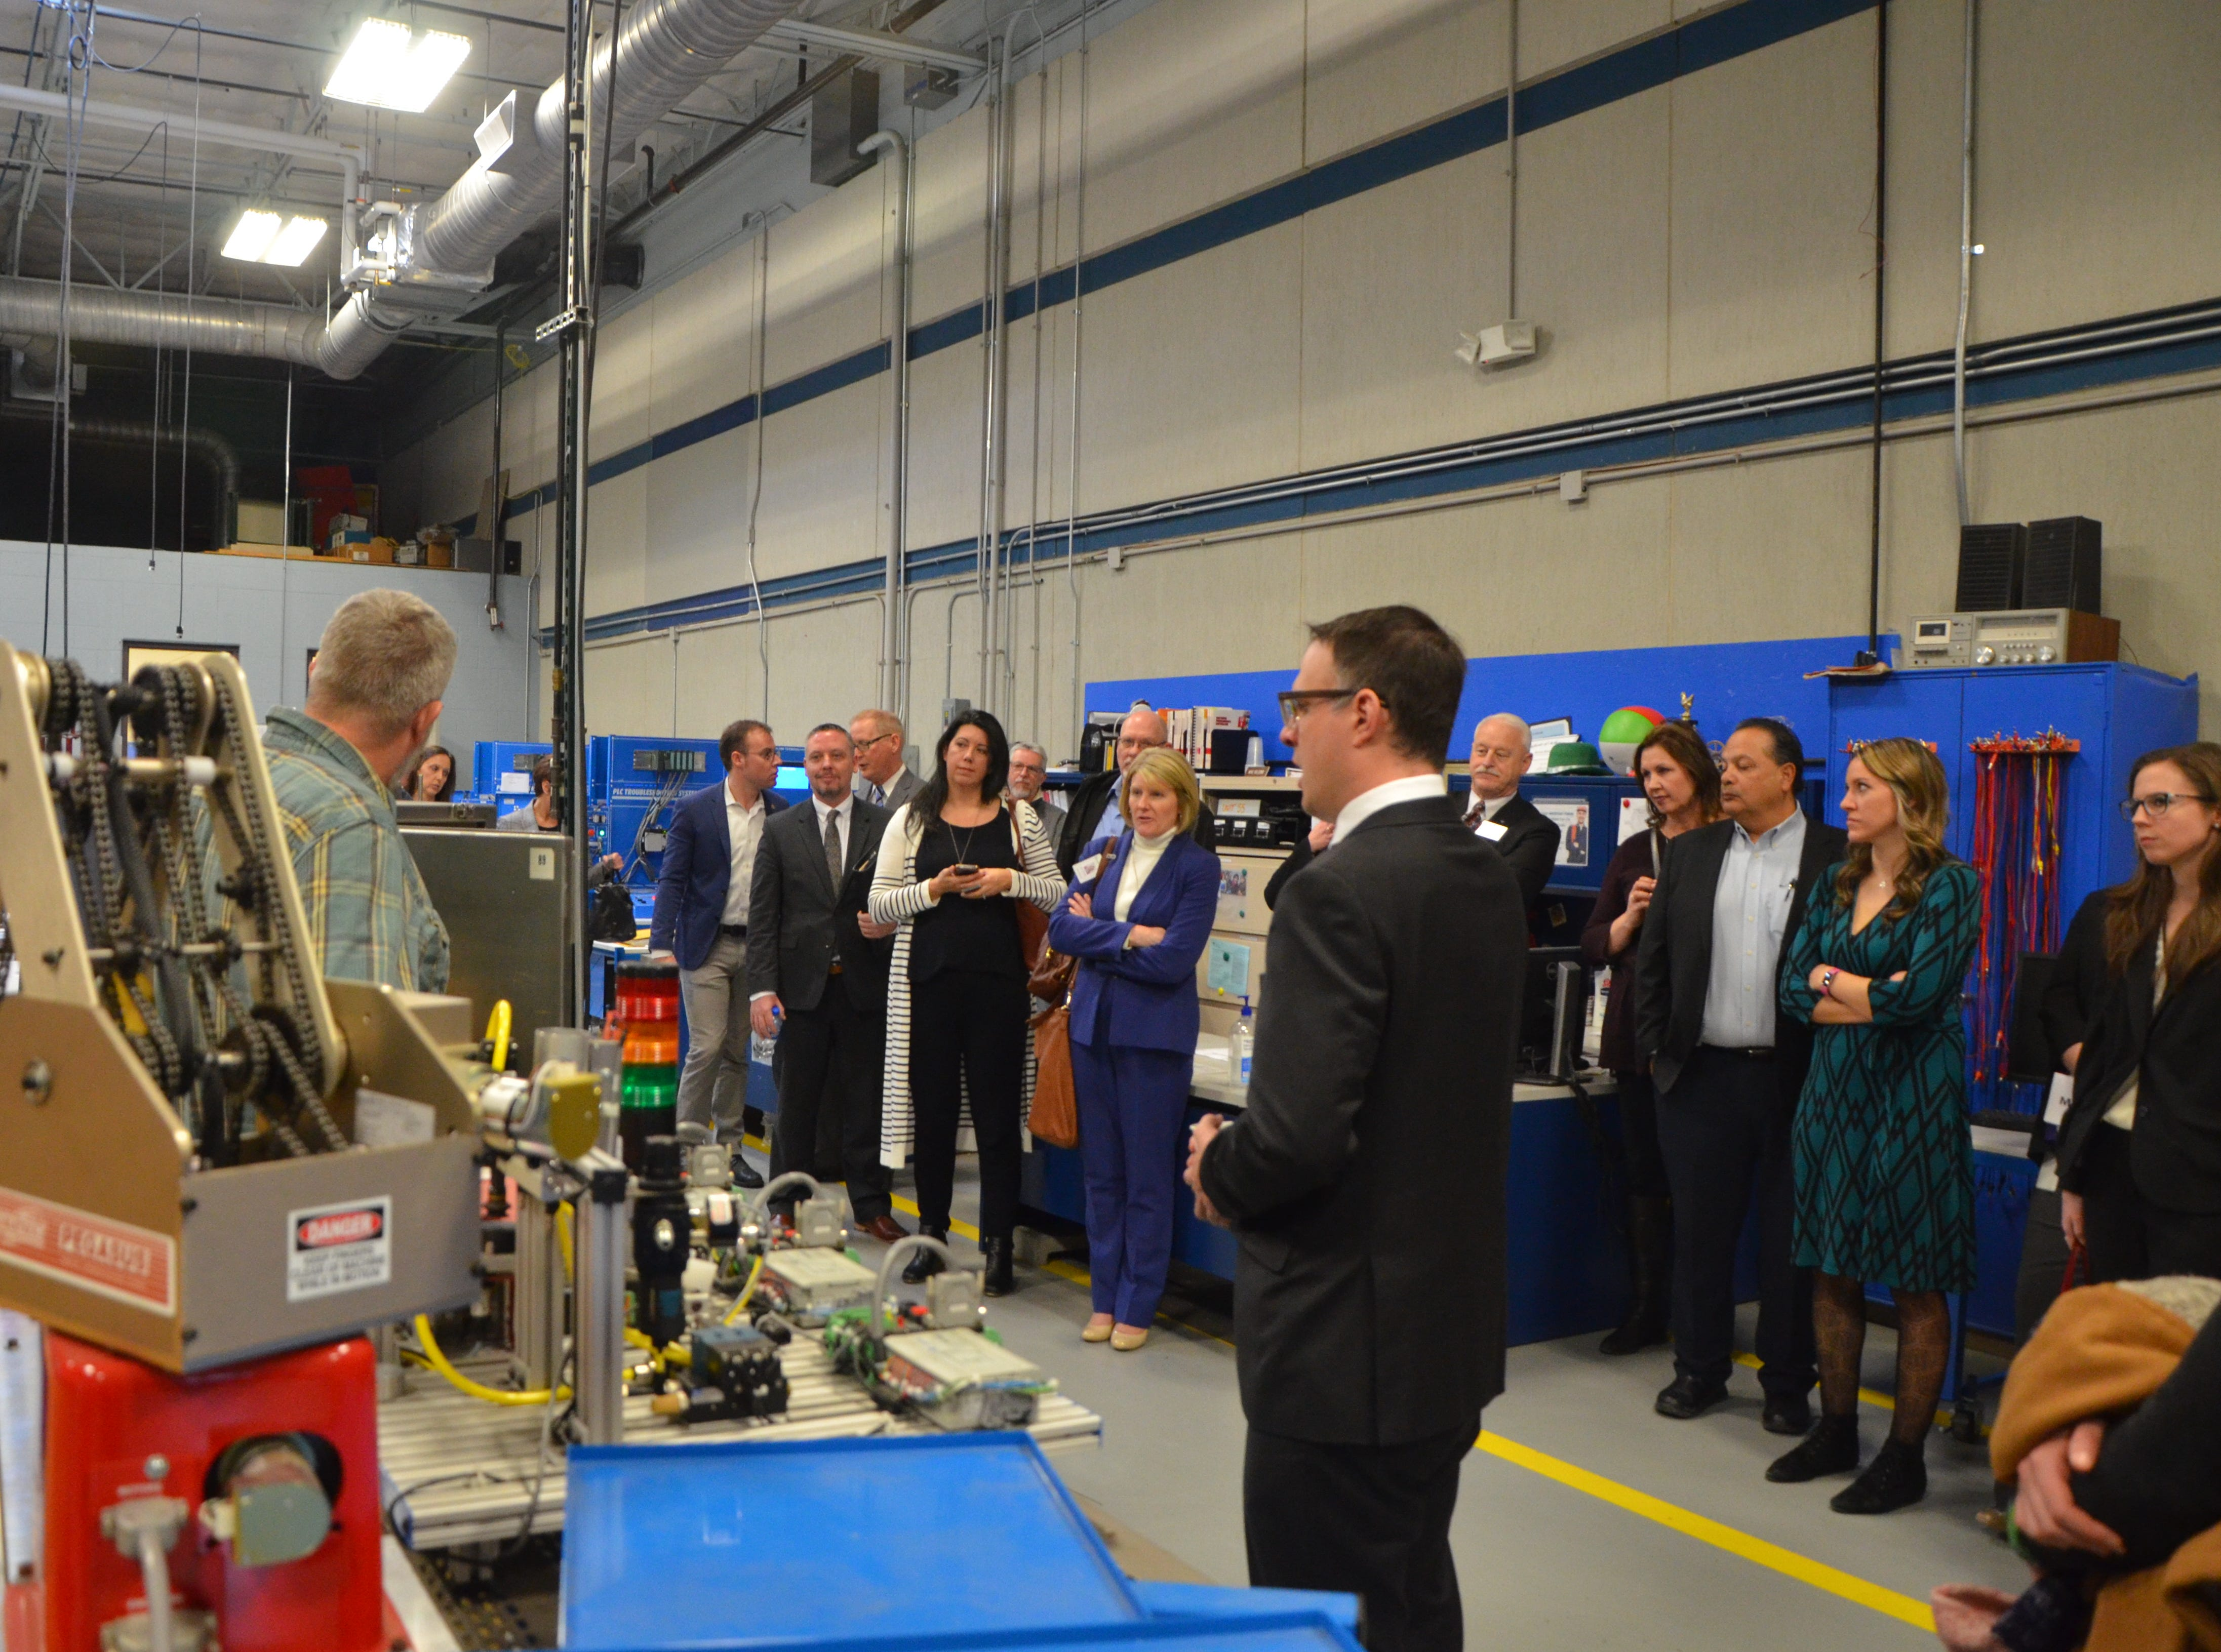 Members of Gov. Gretchen Whitmer's administration along with representatives from companies and organizations in Calhoun County were brought on a tour of Kellogg Community College's Regional Manufacturing Technology Center on Friday, Feb. 15, 2019.